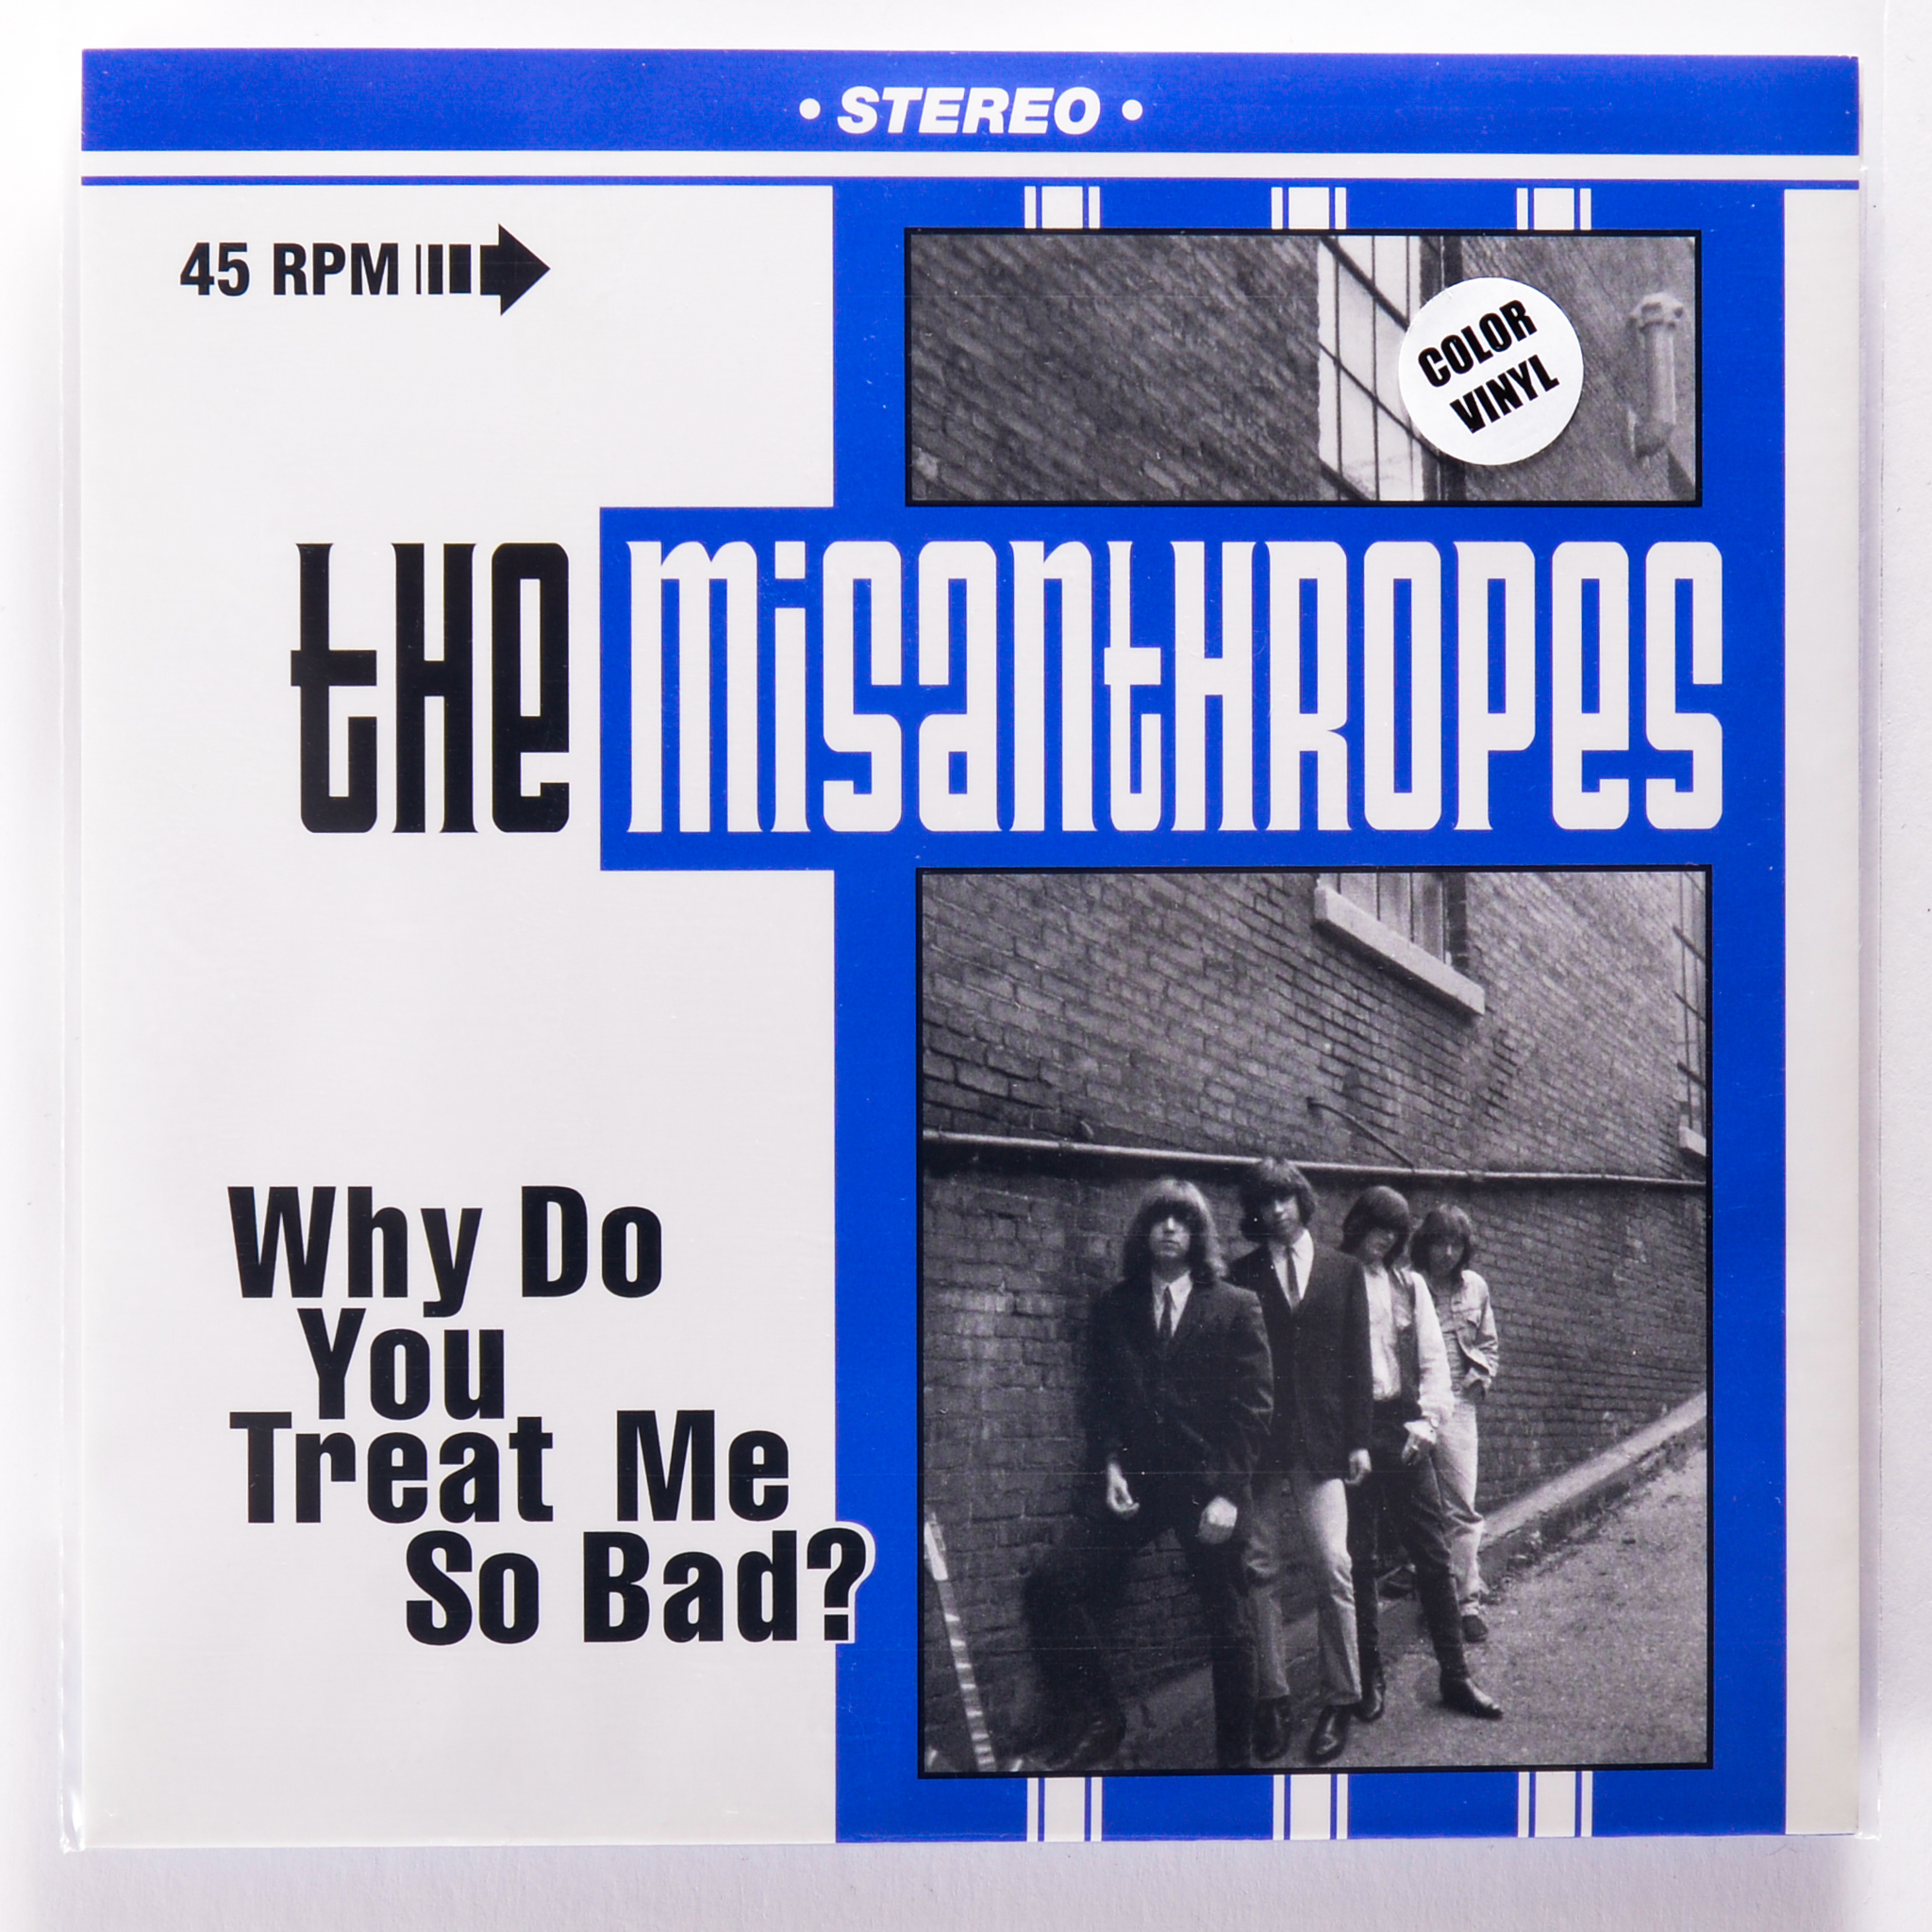 MISANTHROPES - WHY DO YOU TREAT ME SO BAD? / WAITING FOR